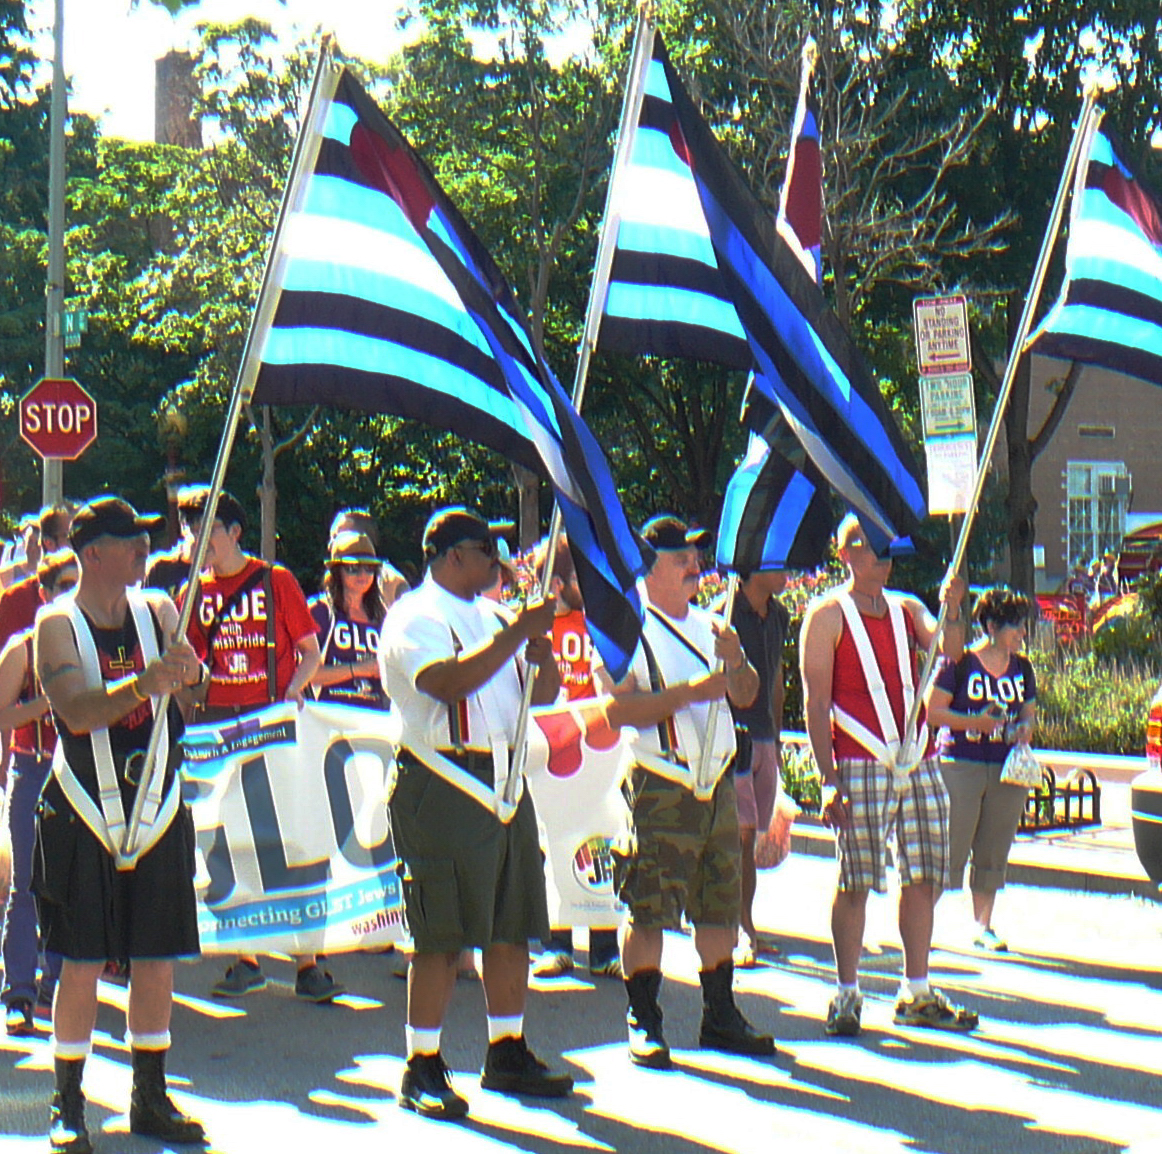 2012_DignityW_Defenders_At_Capital_Pride_Parade